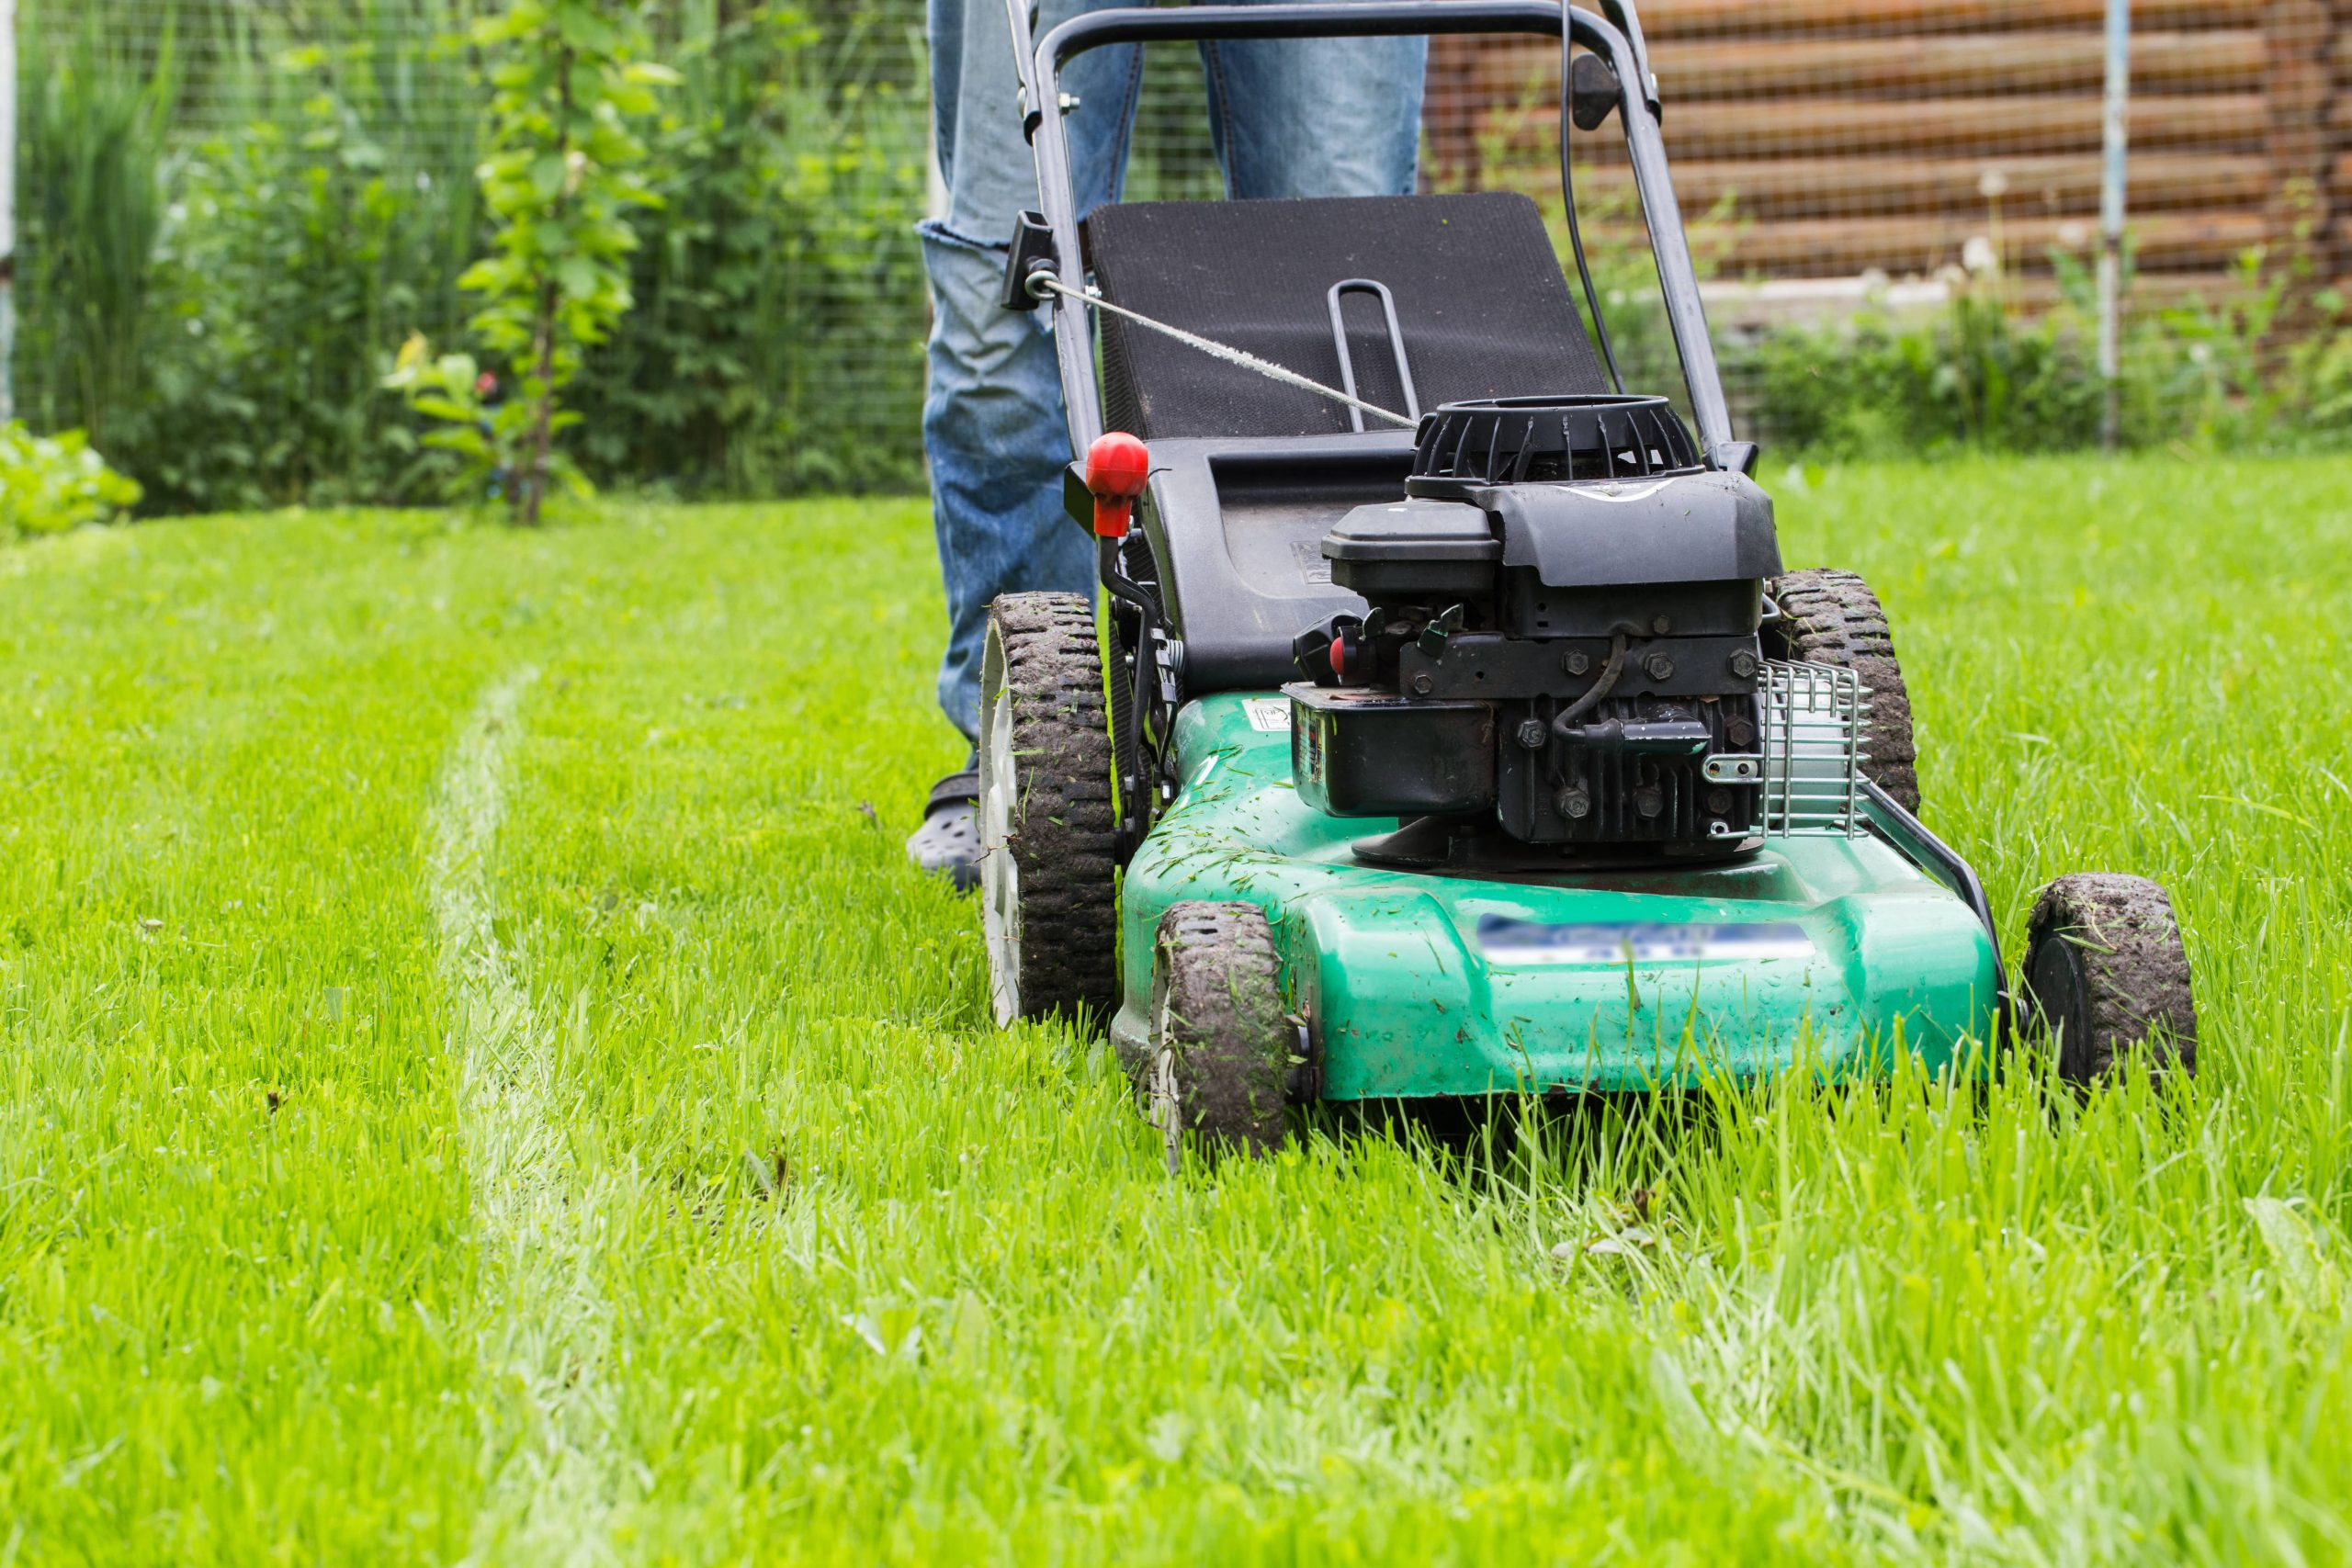 Self propelled petrol lawn mower.